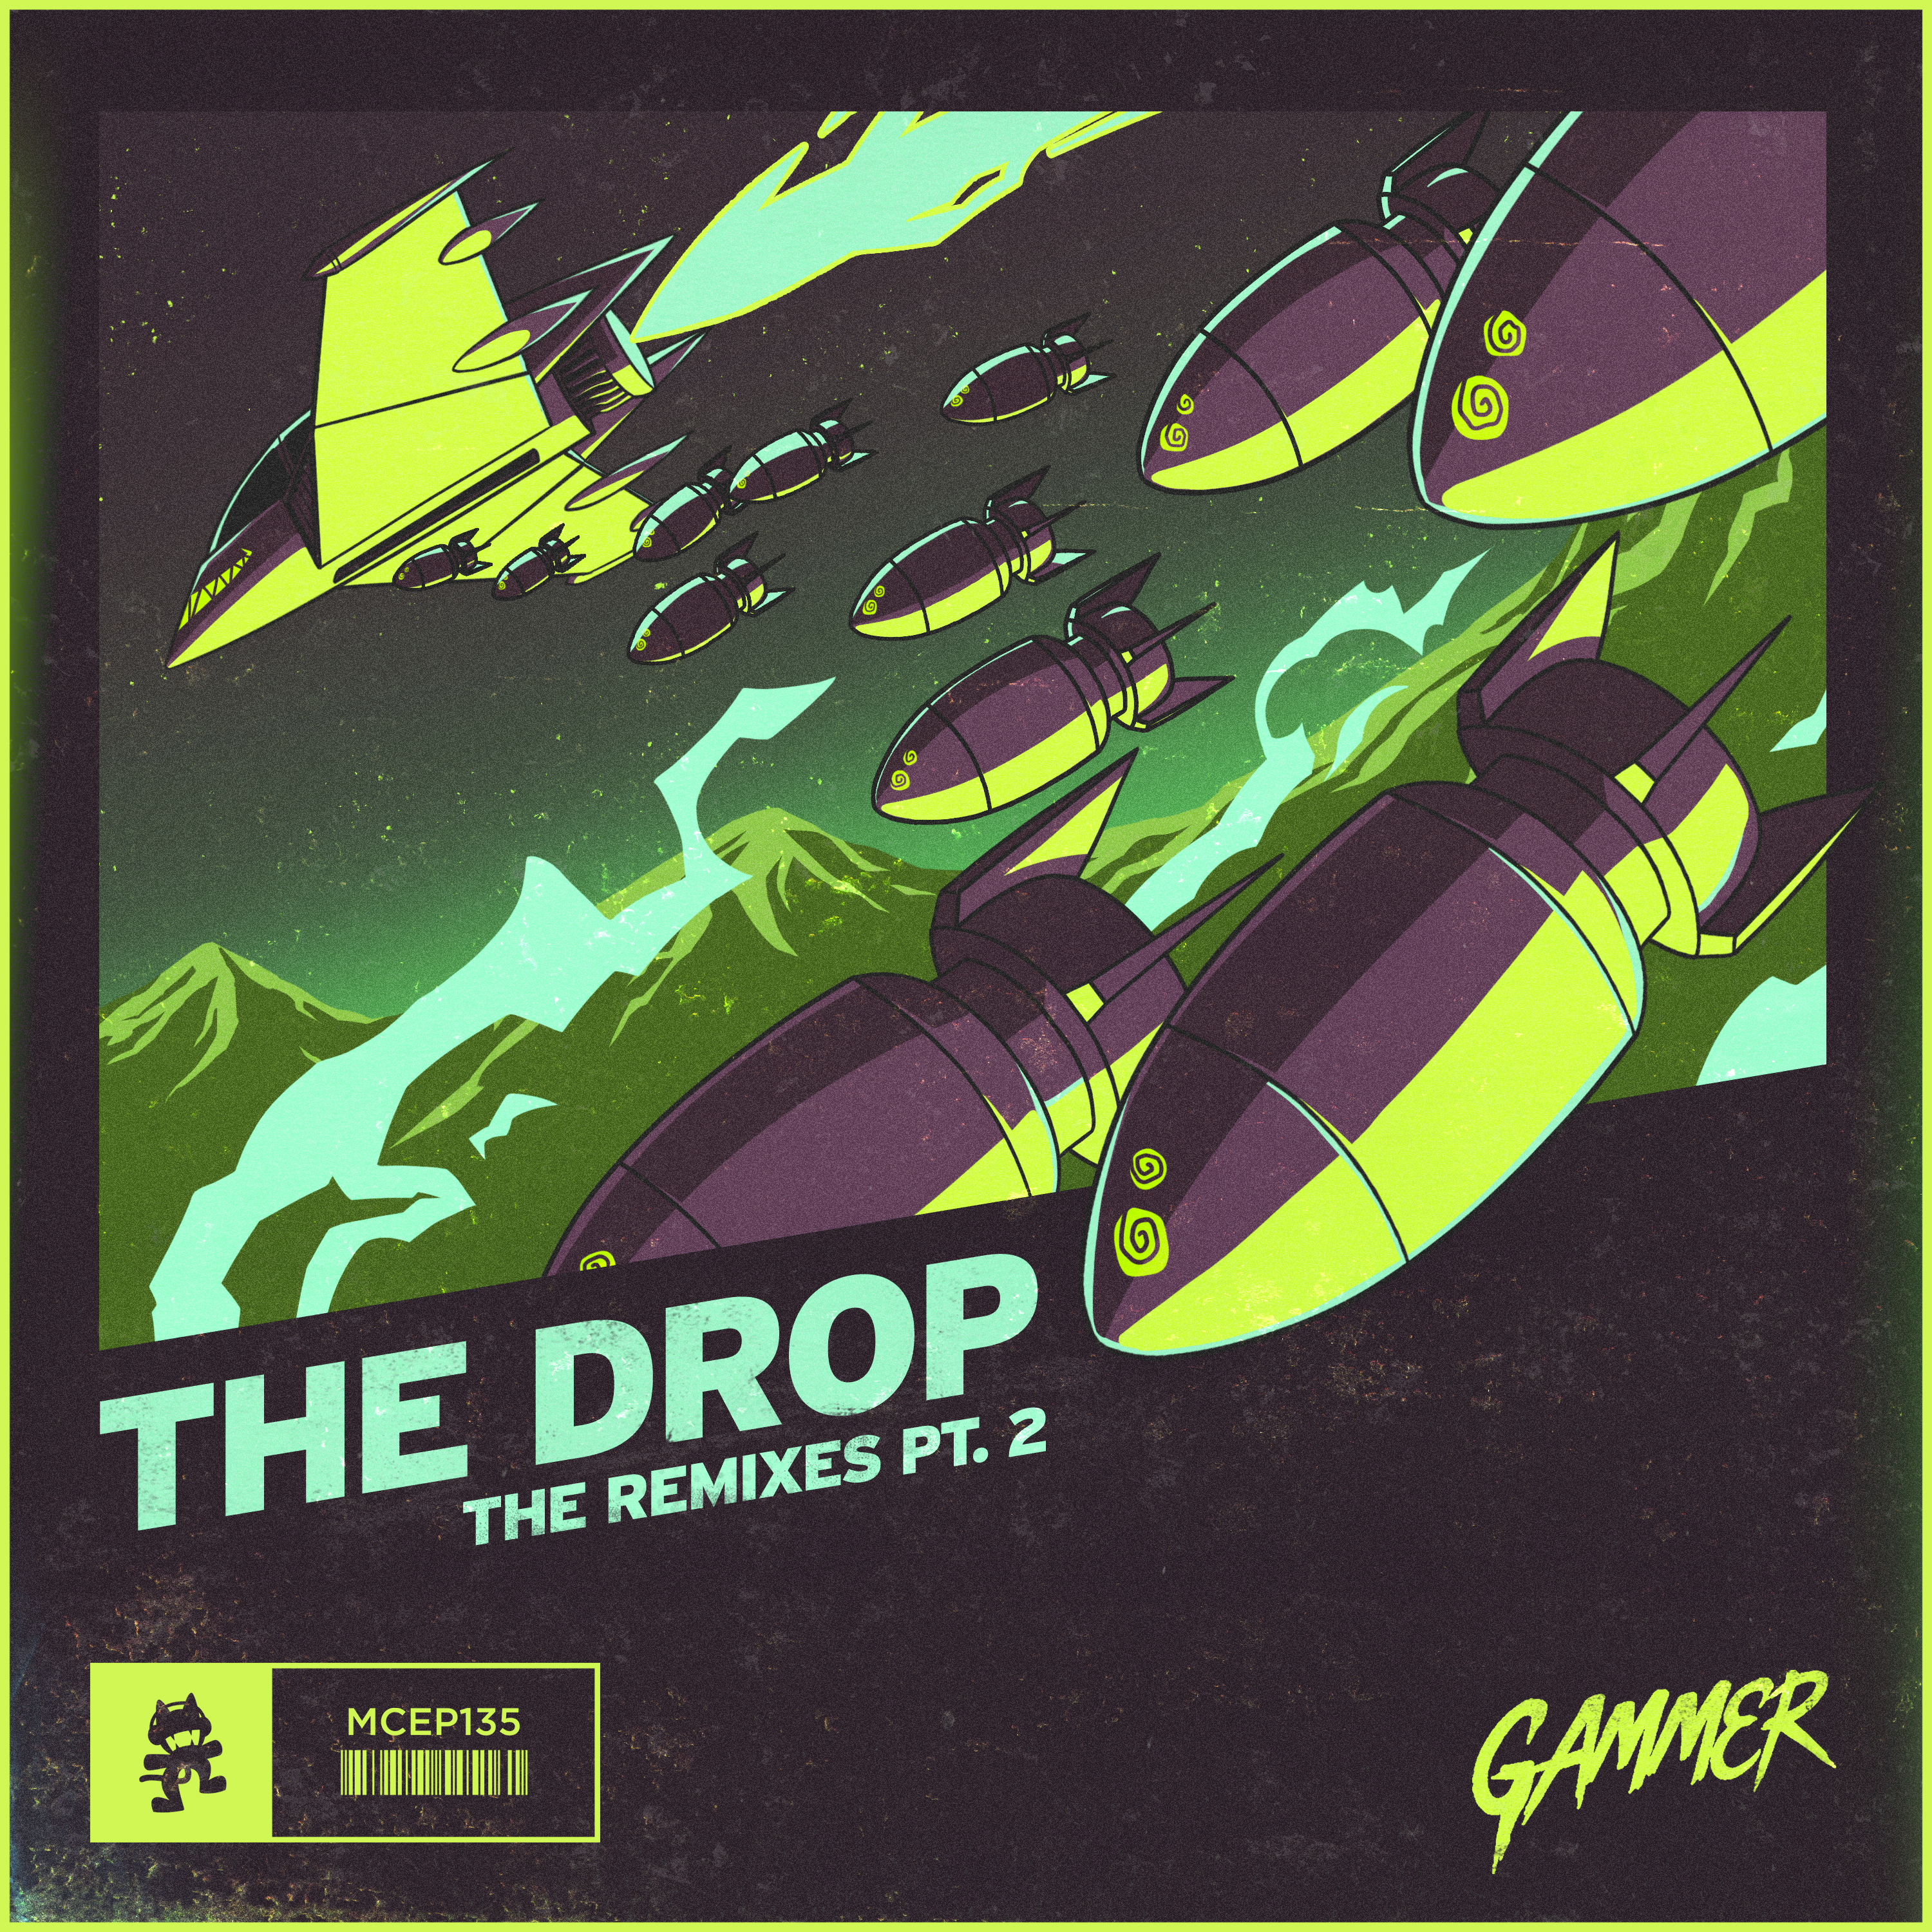 THE DROP (The Remixes Pt. 2)